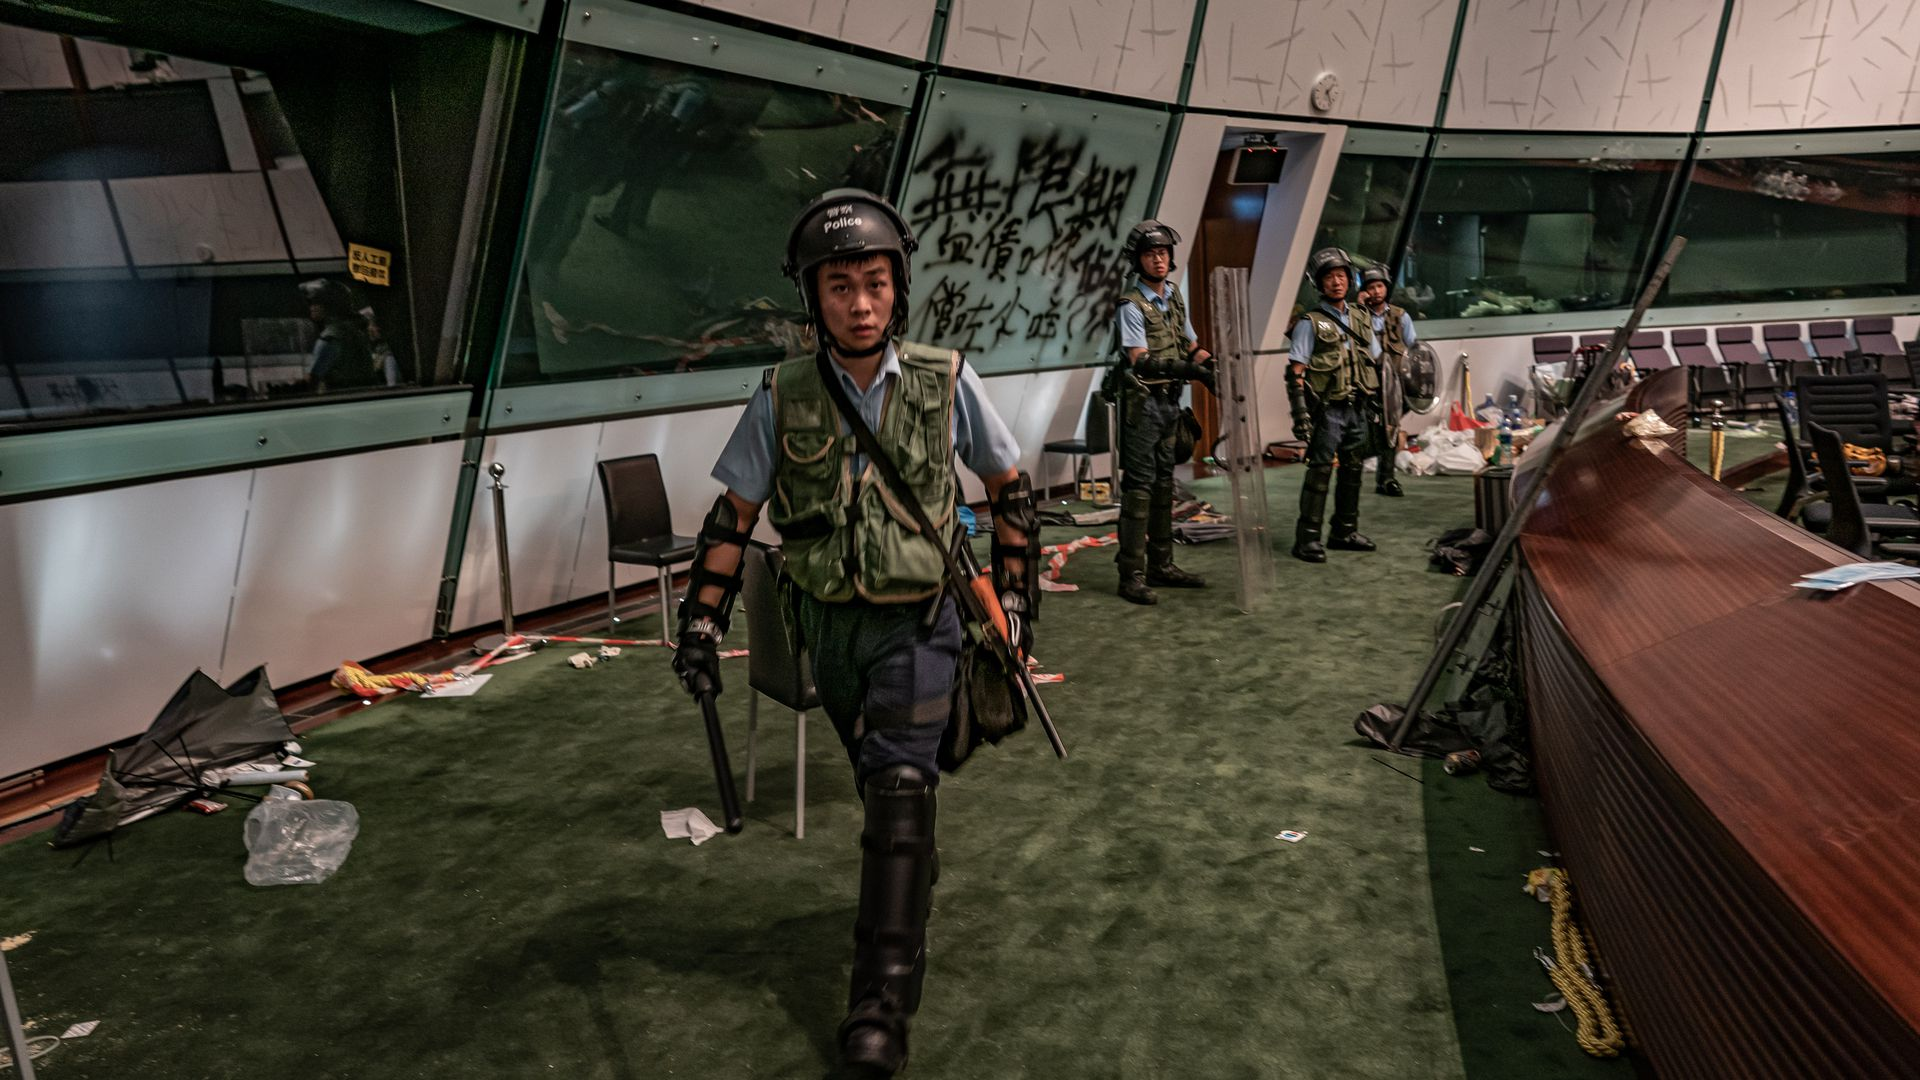 Riot police patrol inside the Legislative Council building.